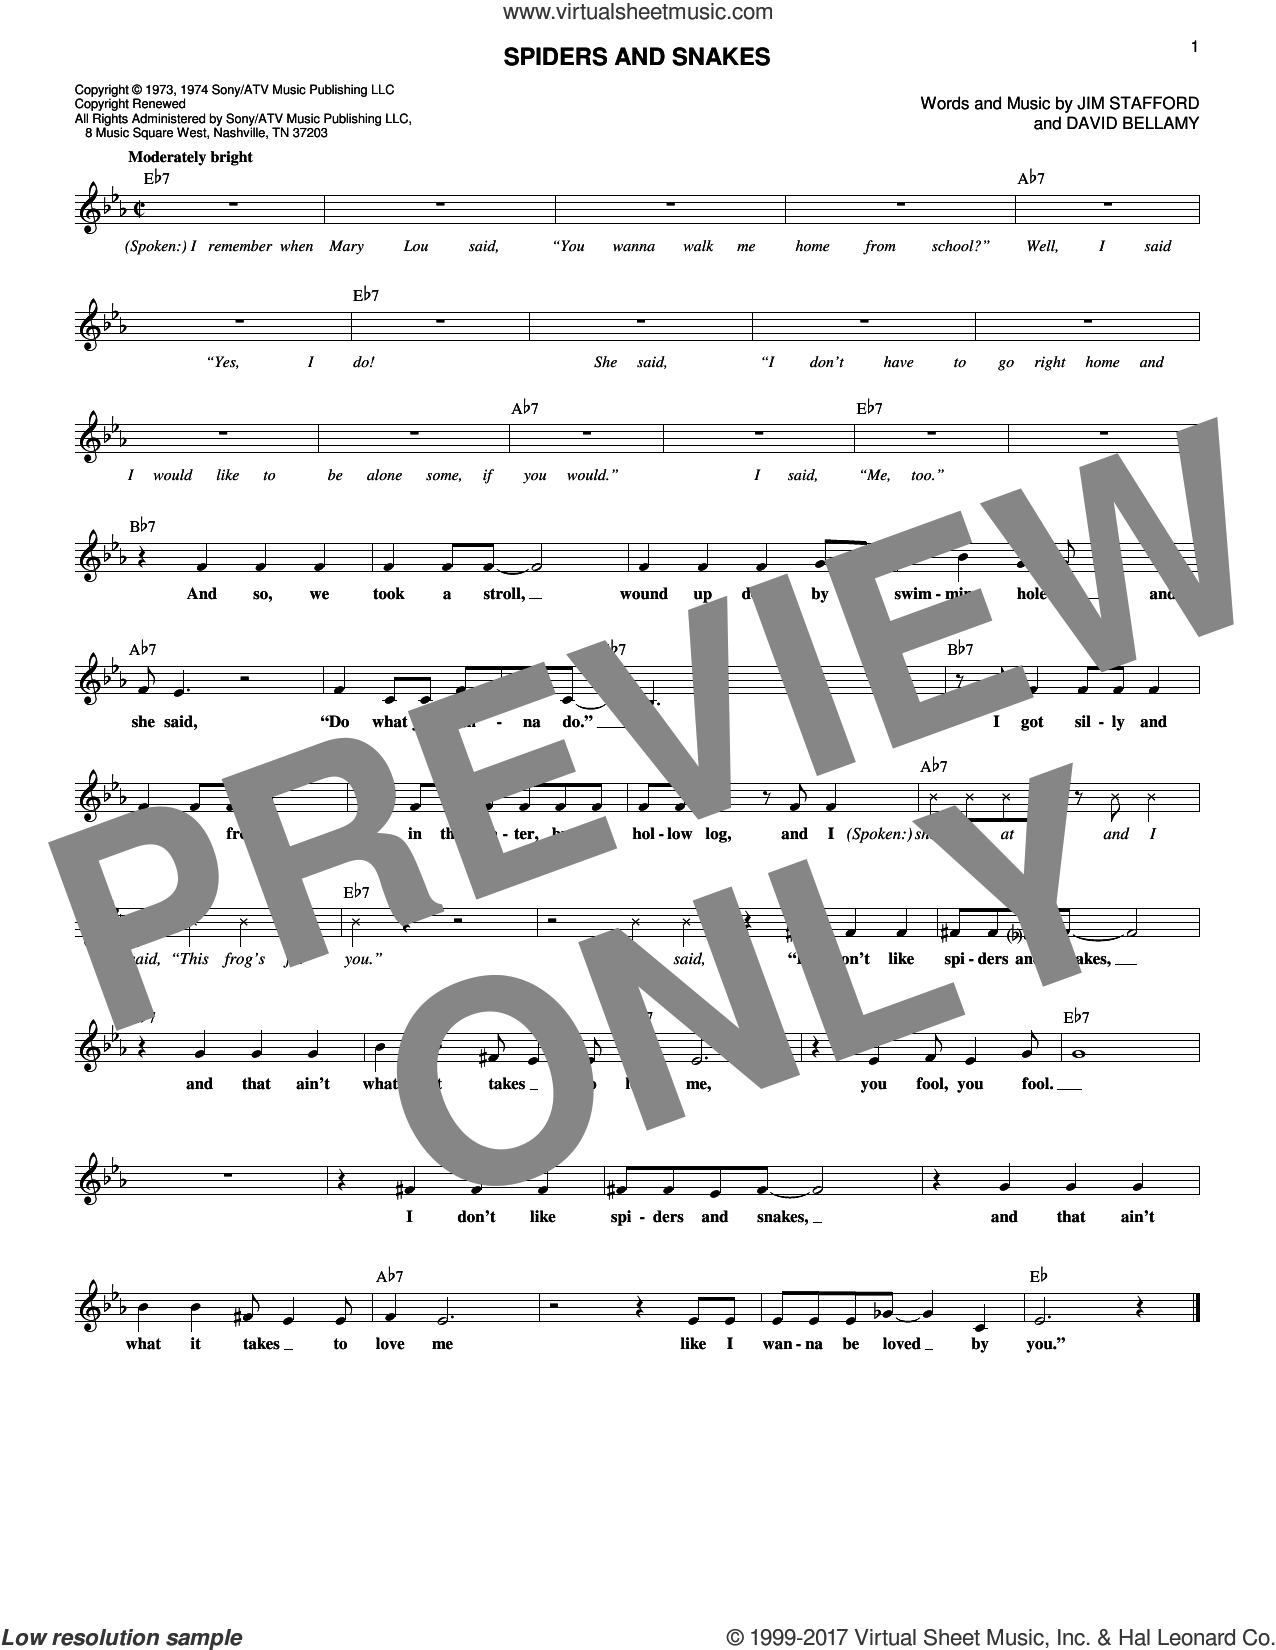 Spiders And Snakes sheet music for voice and other instruments (fake book) by The Party, David Bellamy and Jim Stafford, intermediate skill level